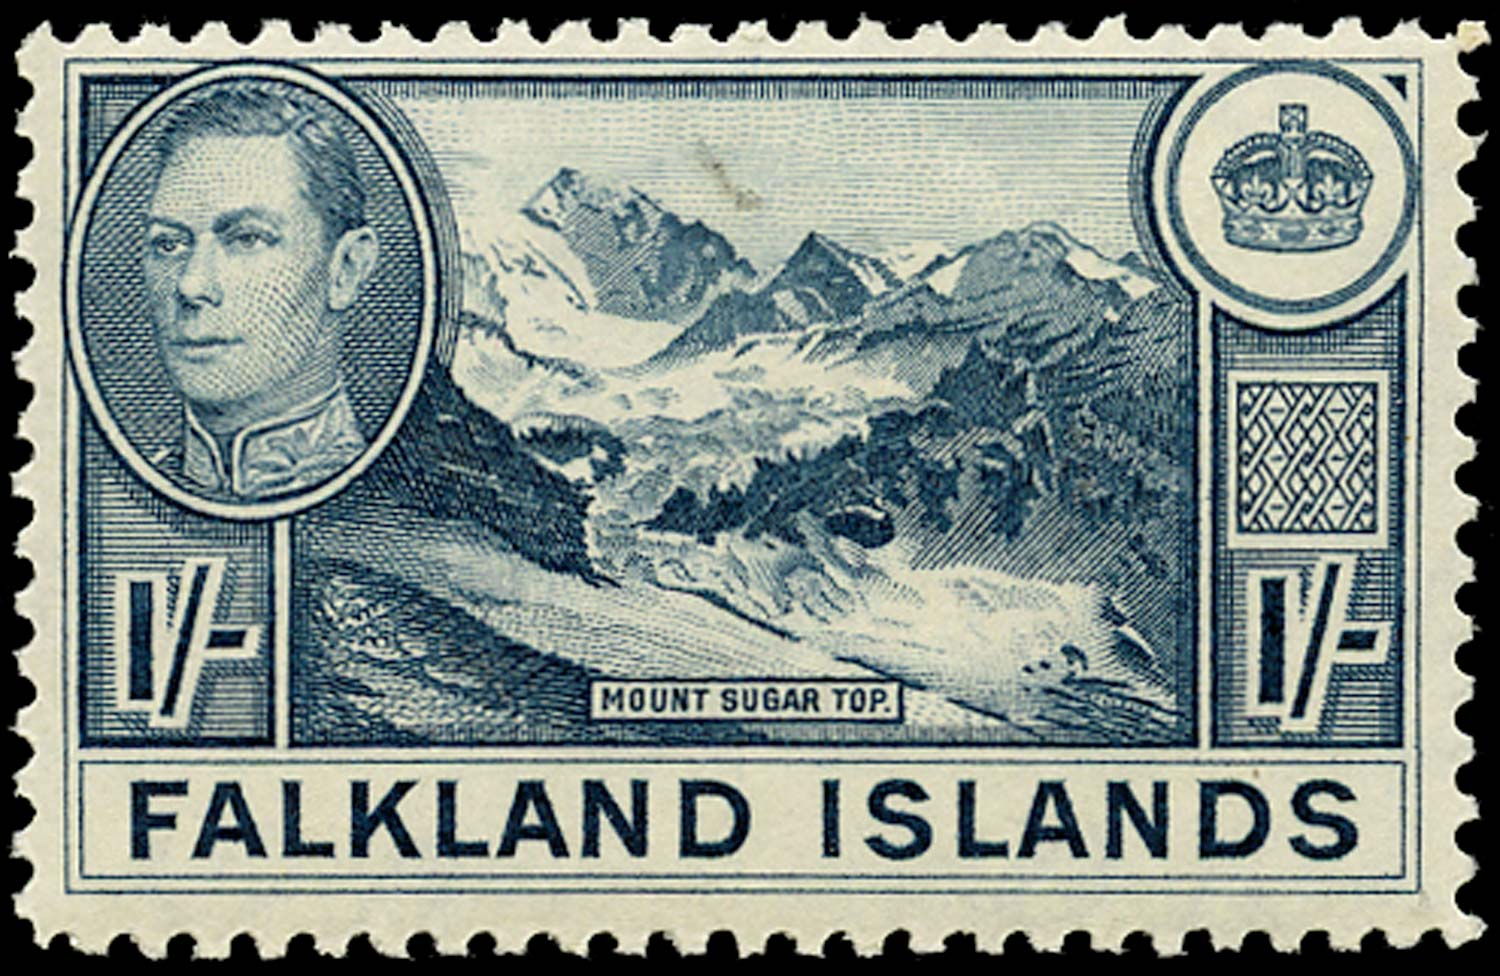 FALKLAND ISLANDS 1938  SG158a Mint 1s dull greenish blue unmounted